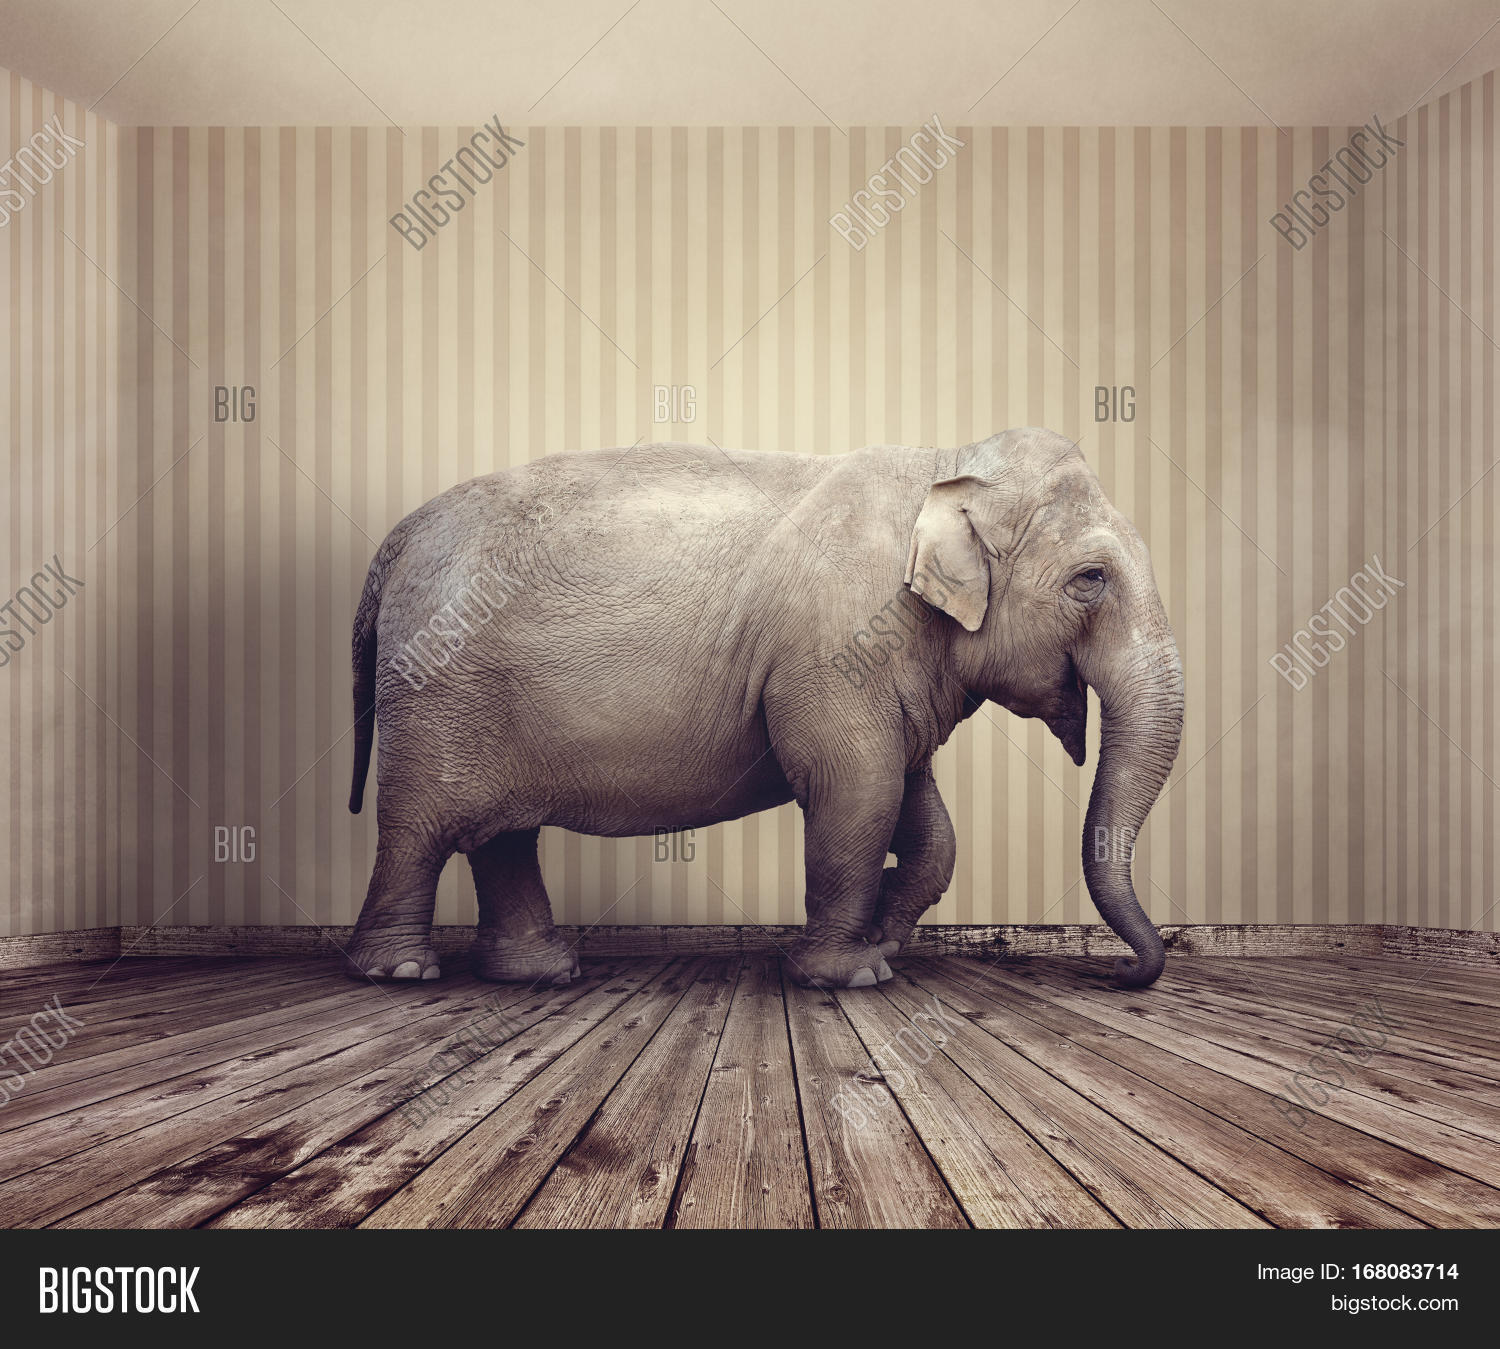 Elephant In A Room Images Best Elephant 2017